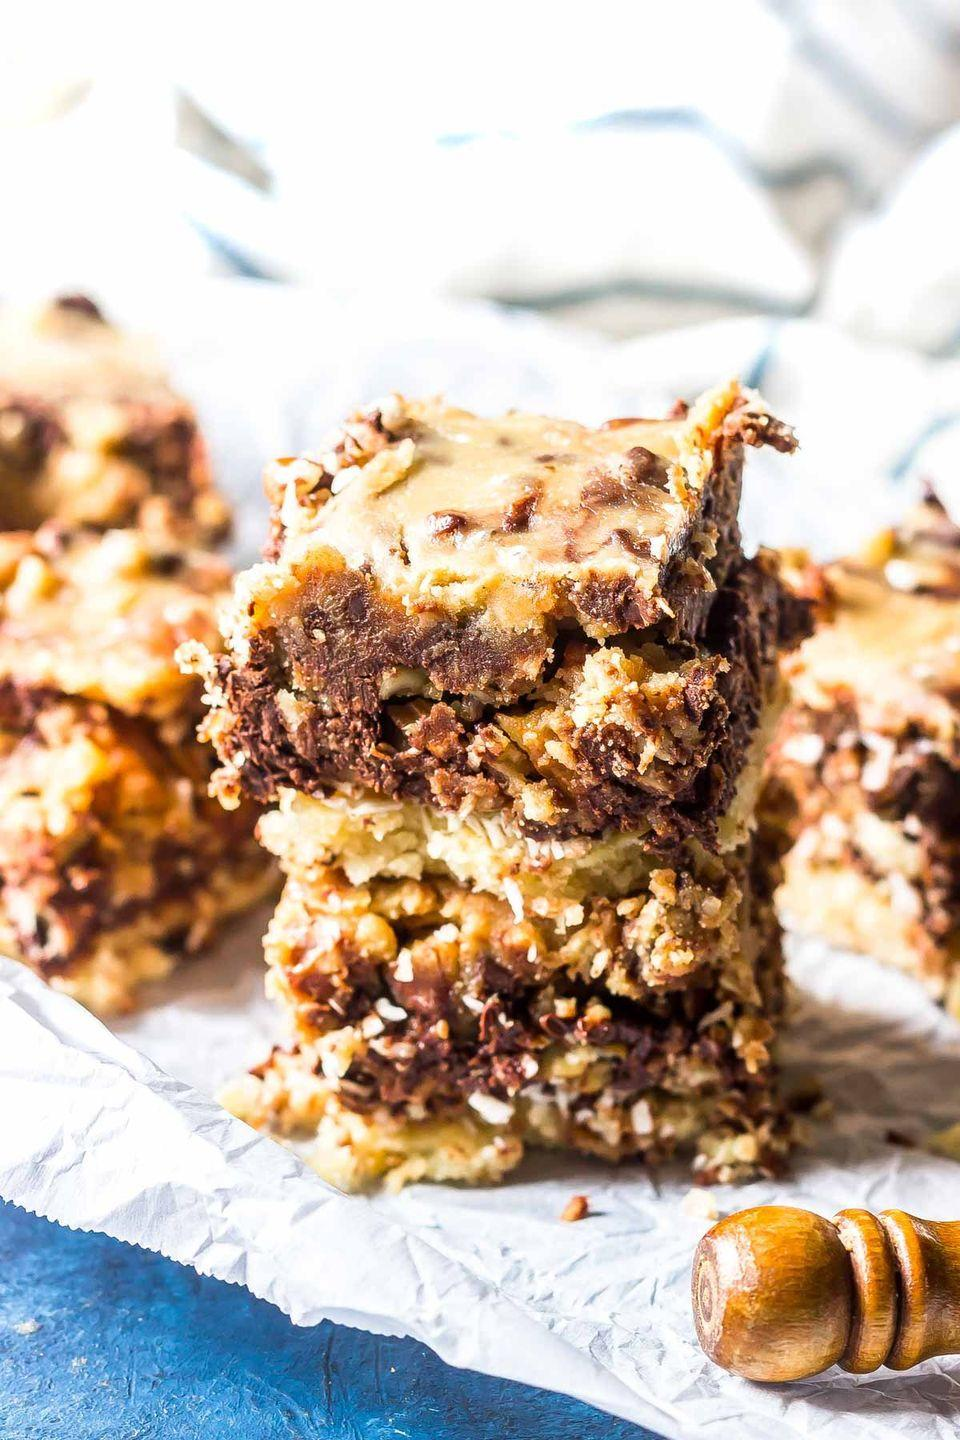 """<p>These low-carb bars will definitely satisfy your sweet tooth. The secret? Homemade caramel sauce. </p><p><a class=""""link rapid-noclick-resp"""" href=""""https://www.castironketo.net/blog/keto-magic-bars/"""" rel=""""nofollow noopener"""" target=""""_blank"""" data-ylk=""""slk:Get the recipe"""">Get the recipe</a></p><p><em>Per serving: 257 calories, 23 g fat, 12.7 carbohydrates, 7.7g fiber, 4.7 g sugar</em></p>"""